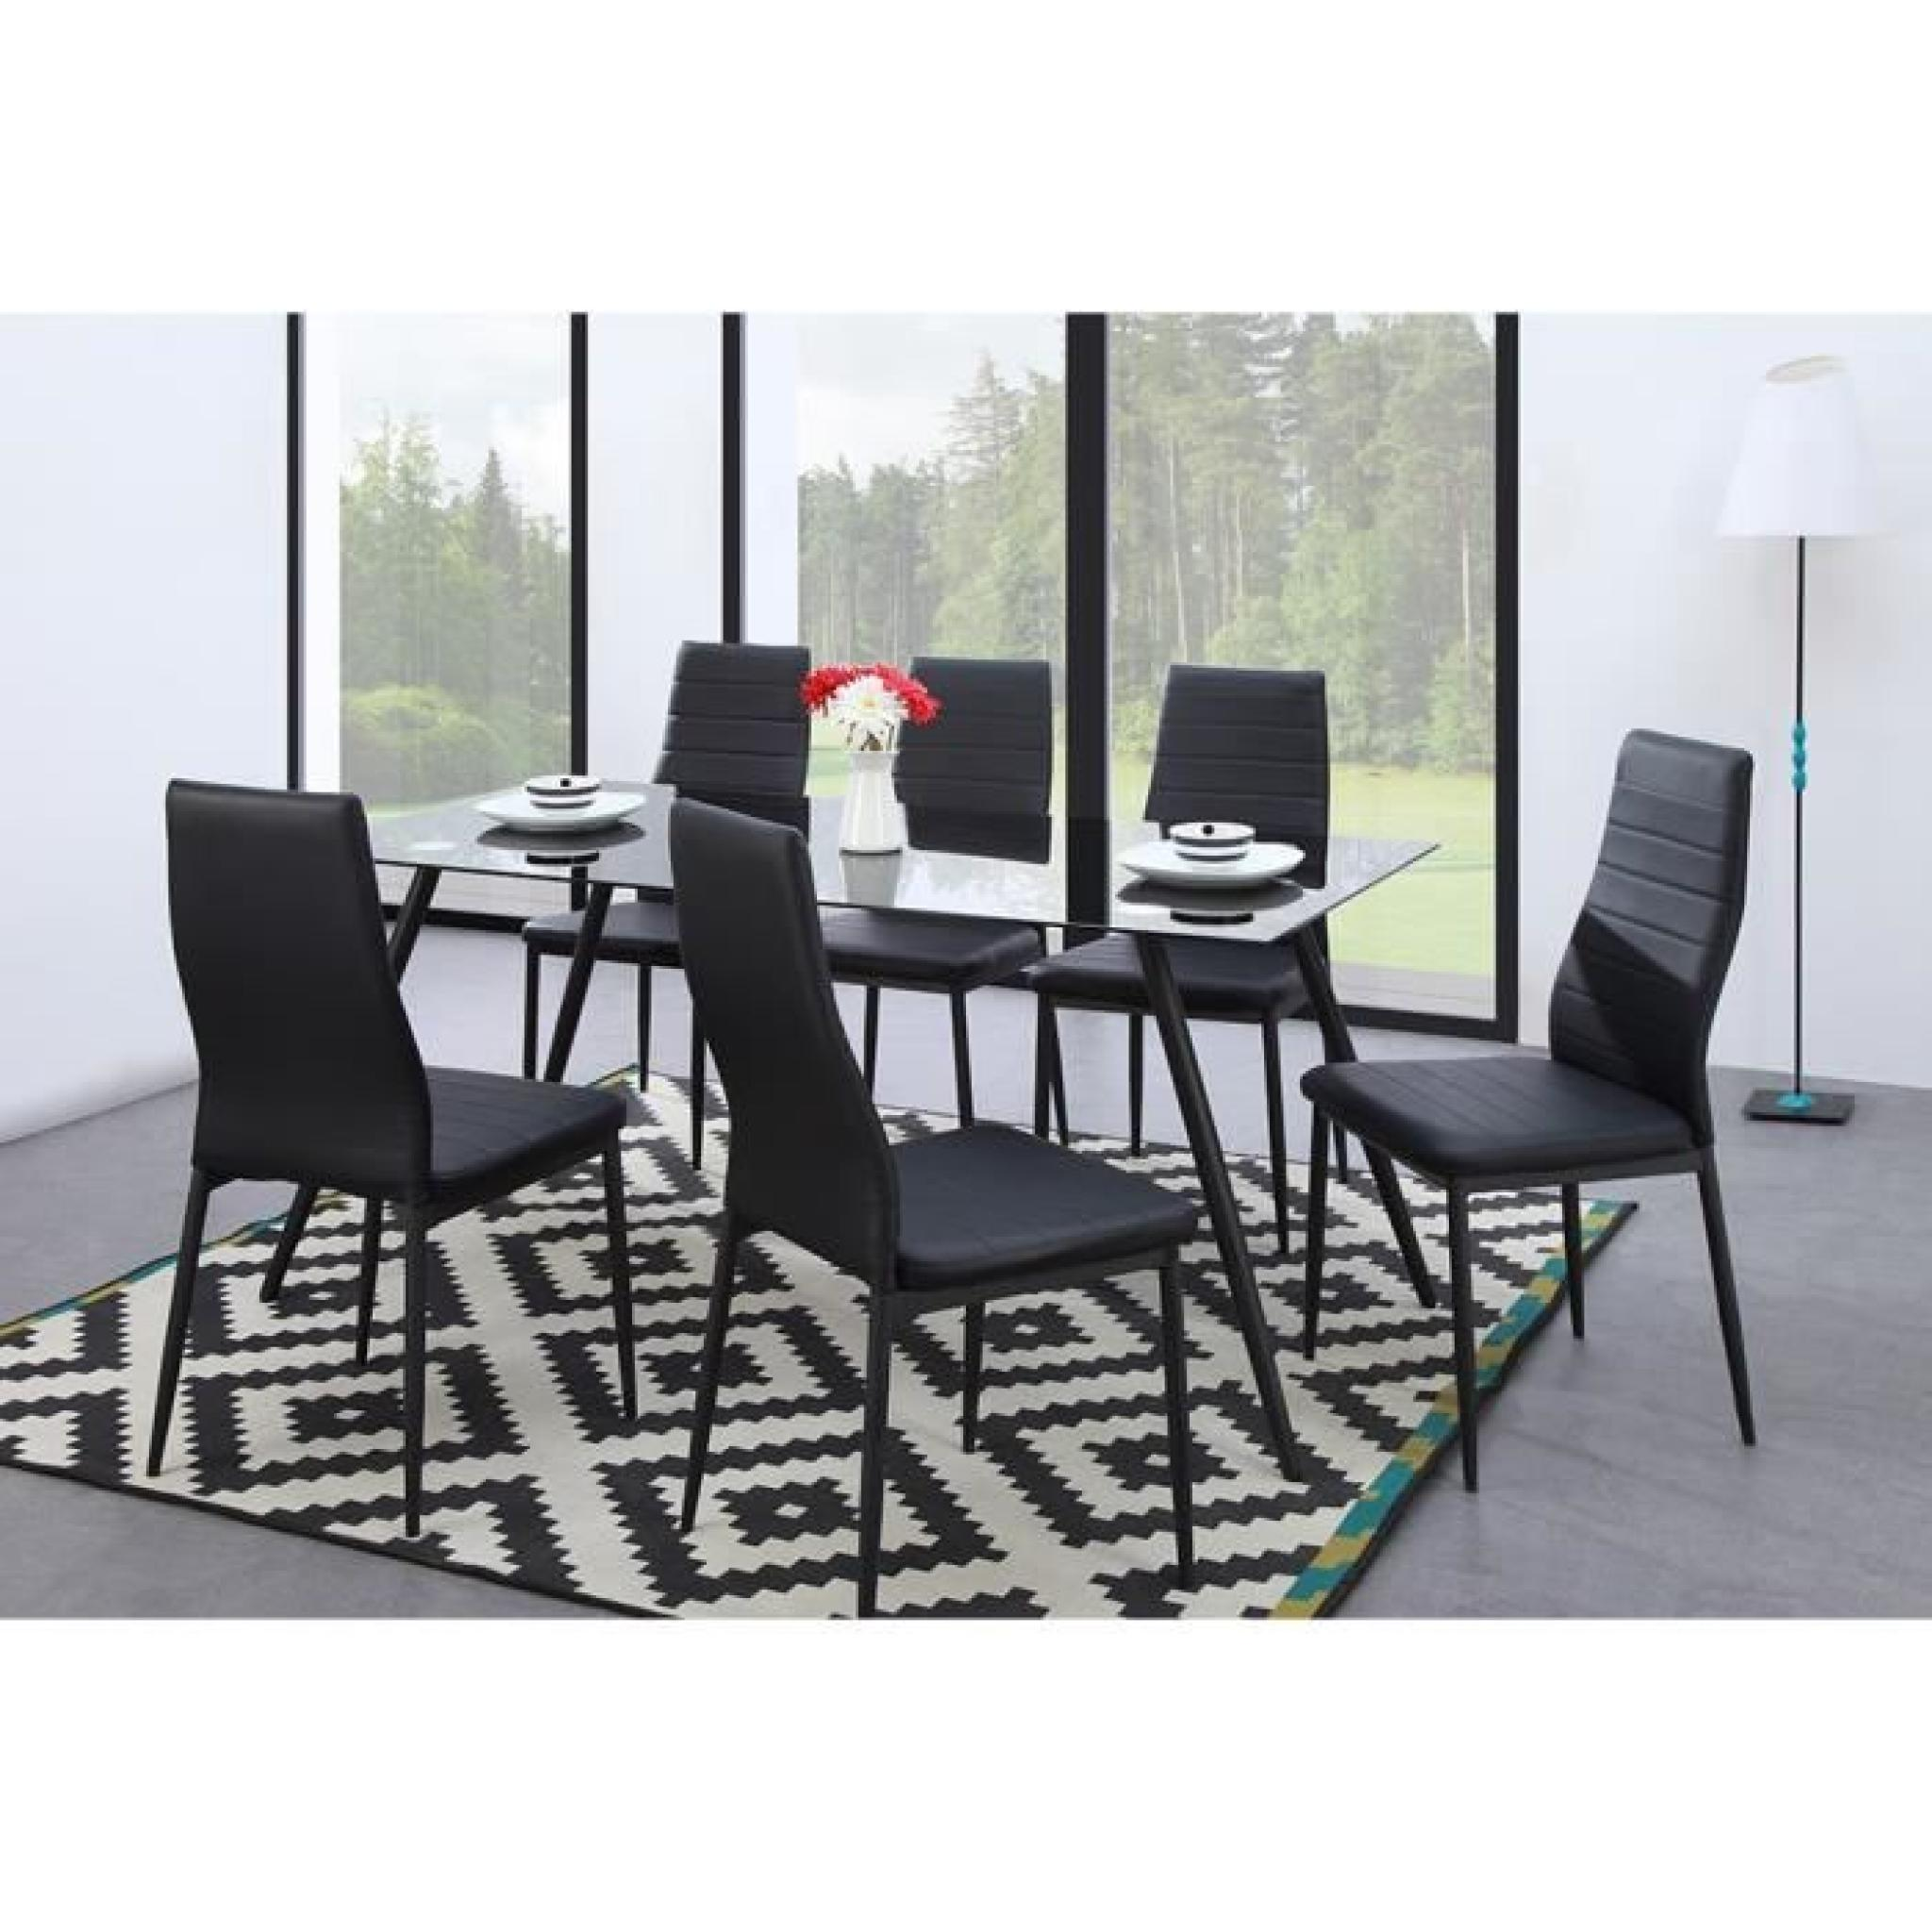 sam lot de 6 chaises de salle manger noires achat vente chaise salle a manger pas cher. Black Bedroom Furniture Sets. Home Design Ideas